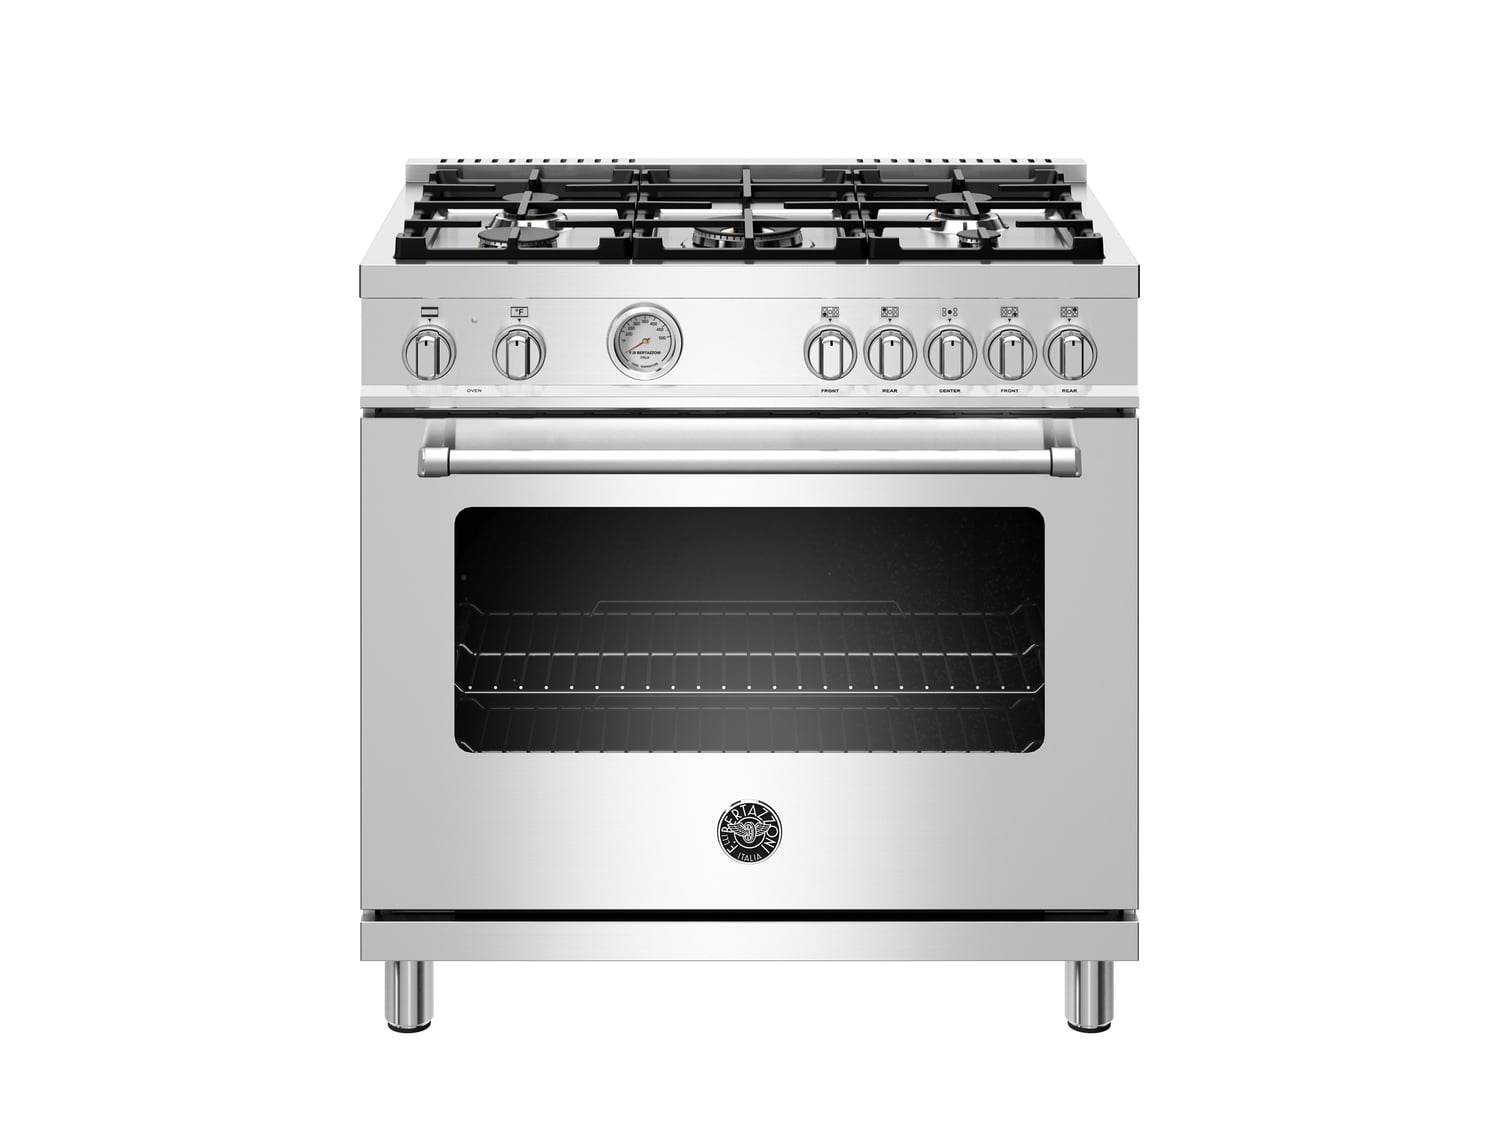 Load image into Gallery viewer, Bertazzoni MAST365DFMXE 36 Inch Dual Fuel Range, 5 Burner, Electric Oven Stainless Steel